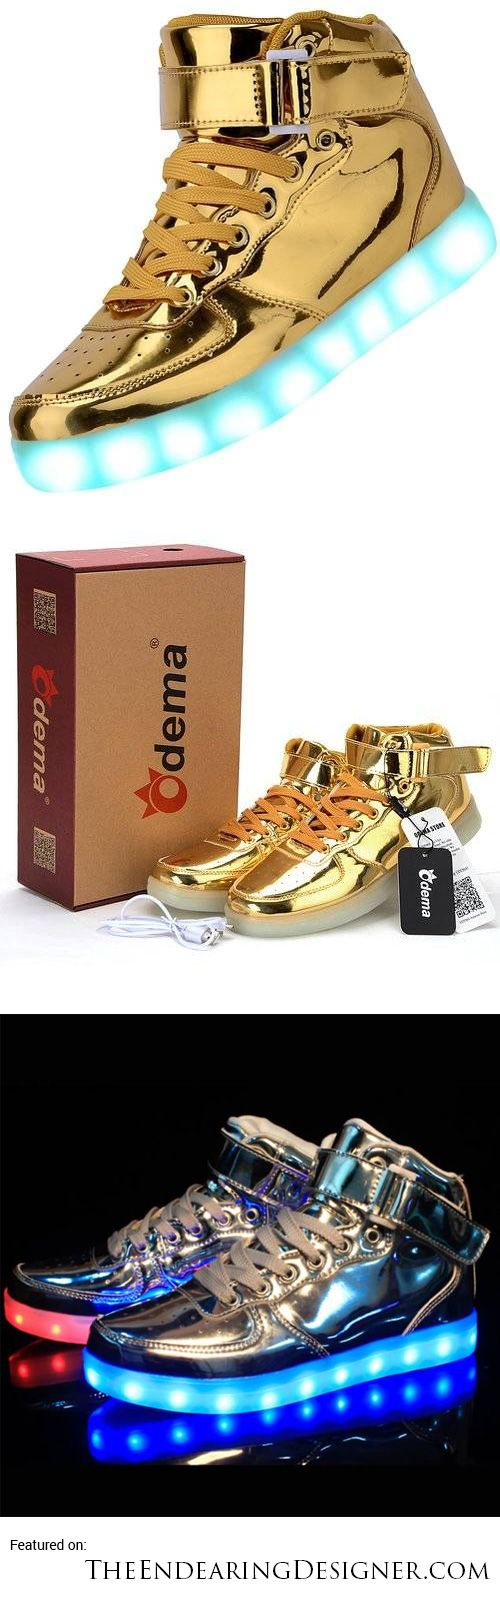 Odema High Top Gold & Silver Light Up Sneakers // 10 LED Shoes That Light Up At The Bottom And Change Colors Like Crazy [http://theendearingdesigner.com/10-led-shoes-that-light-up-at-the-bottom-and-change-colors-men-women/]